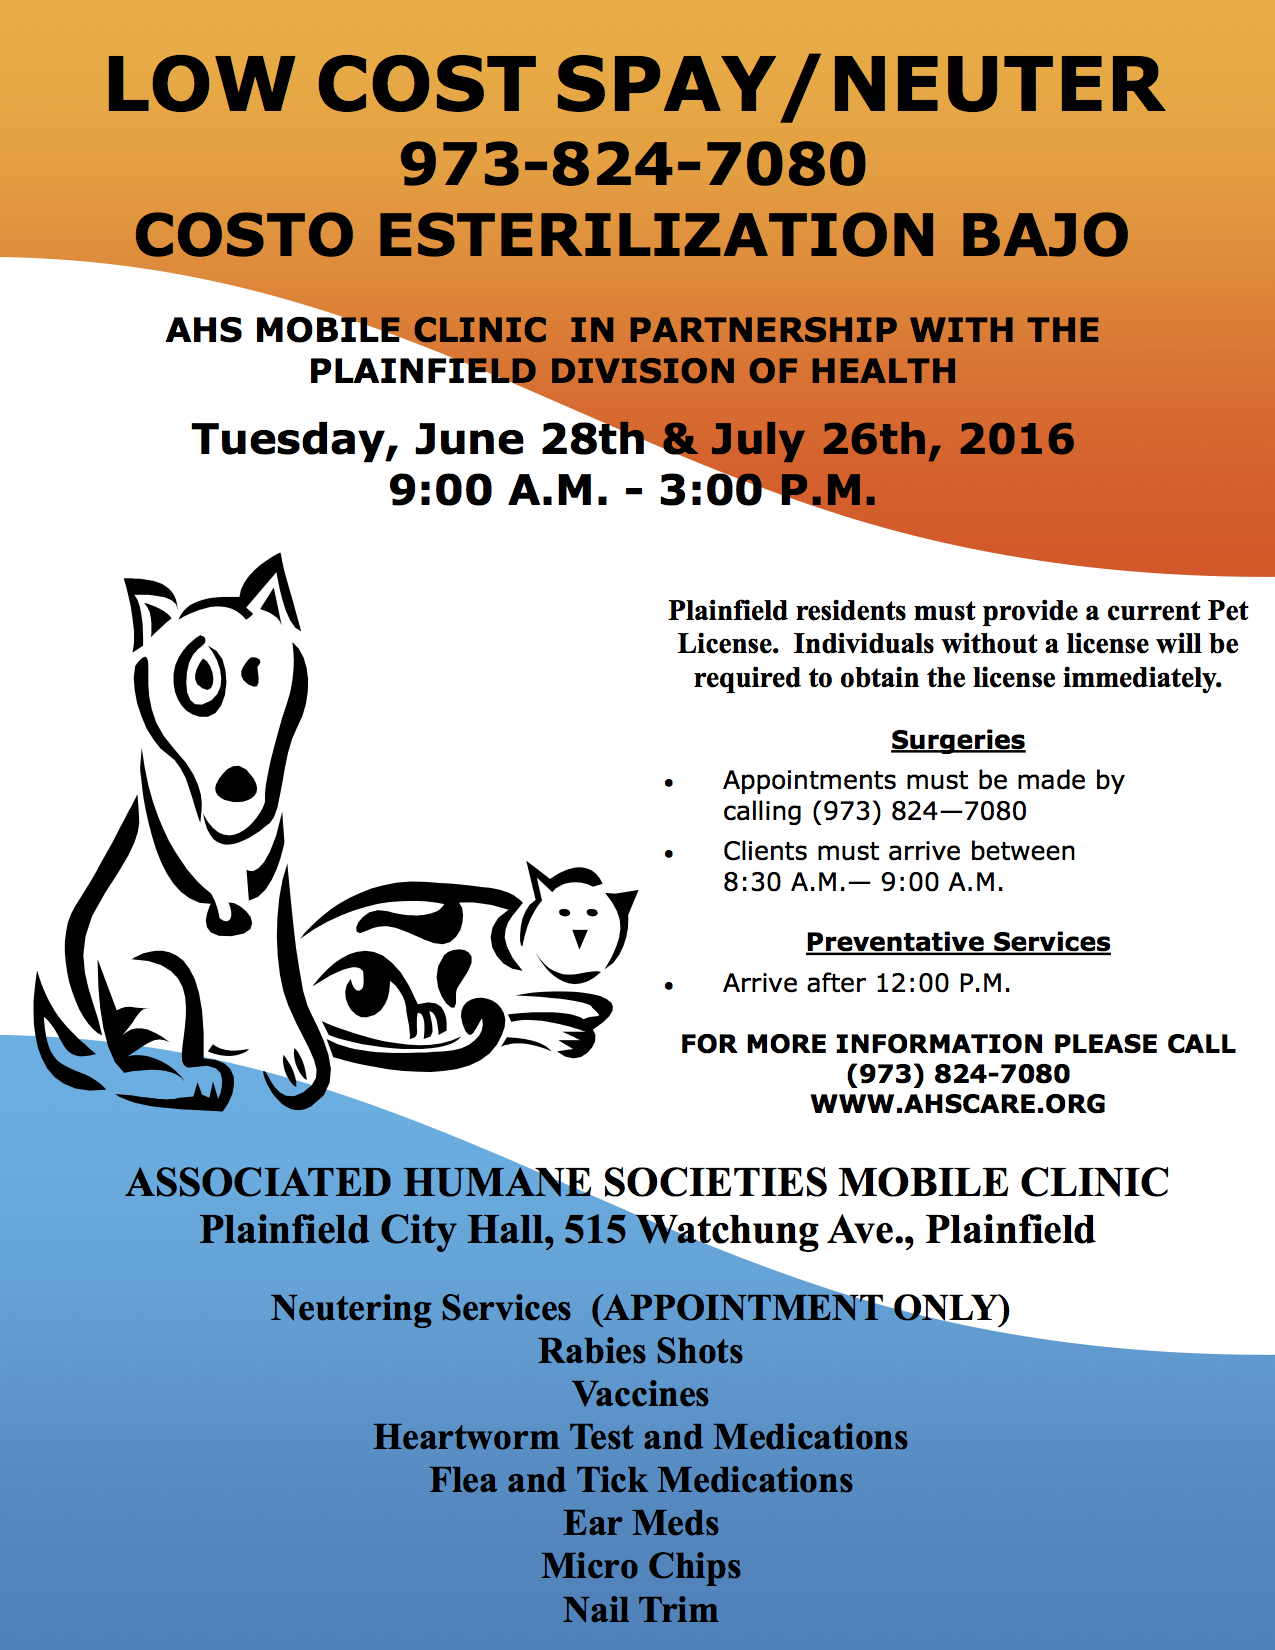 FLYER_Mobile Clinic_June&July_2016.jpg